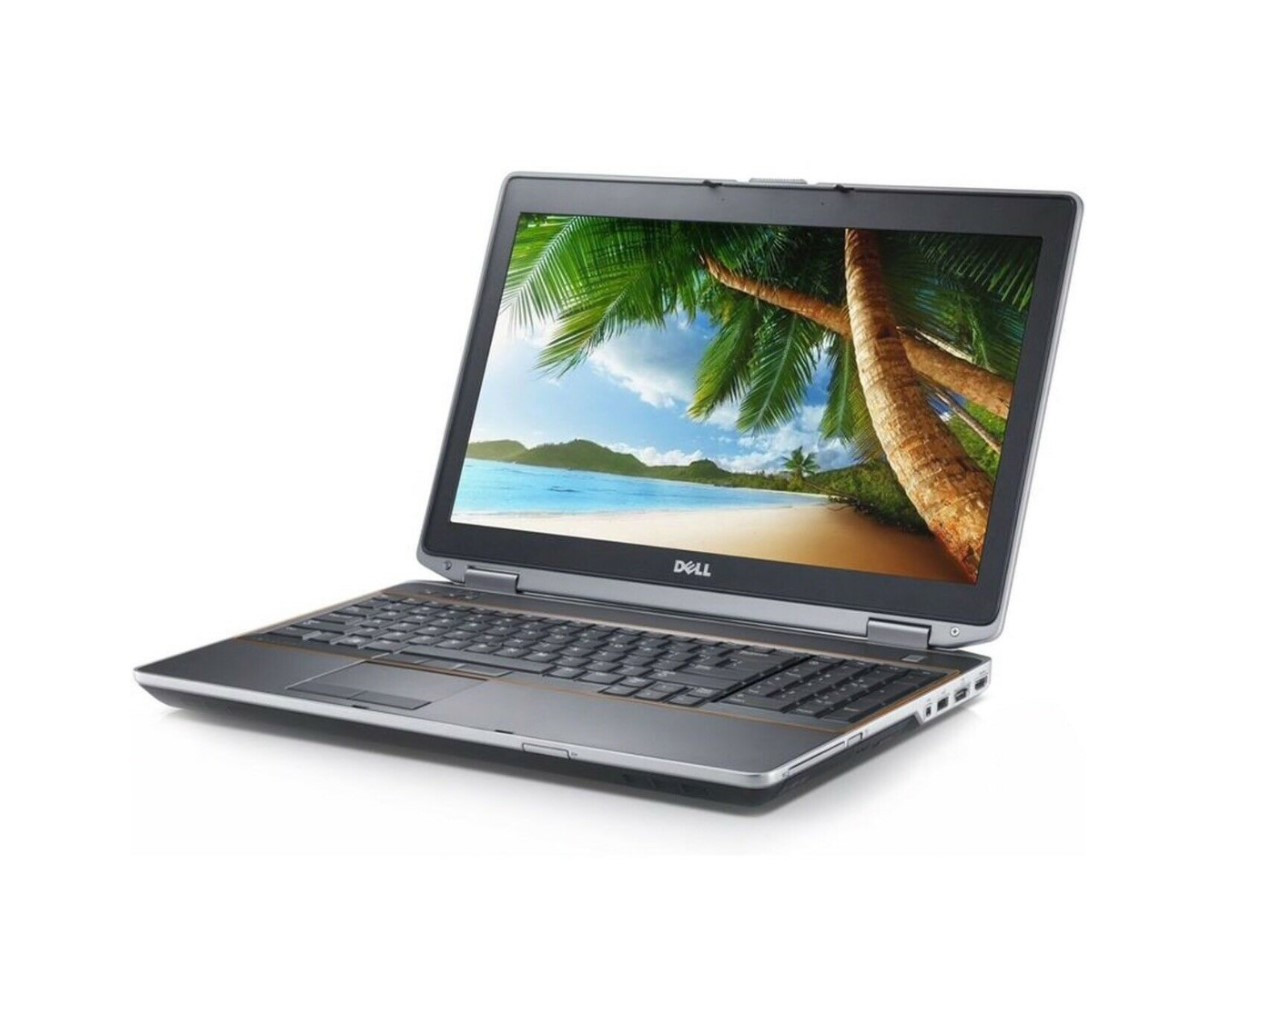 Б/У Dell Latitude E6520 15.6″ i5-2520M /DDR3 8 Gb /SSD 240 Gb / Нет в наличии